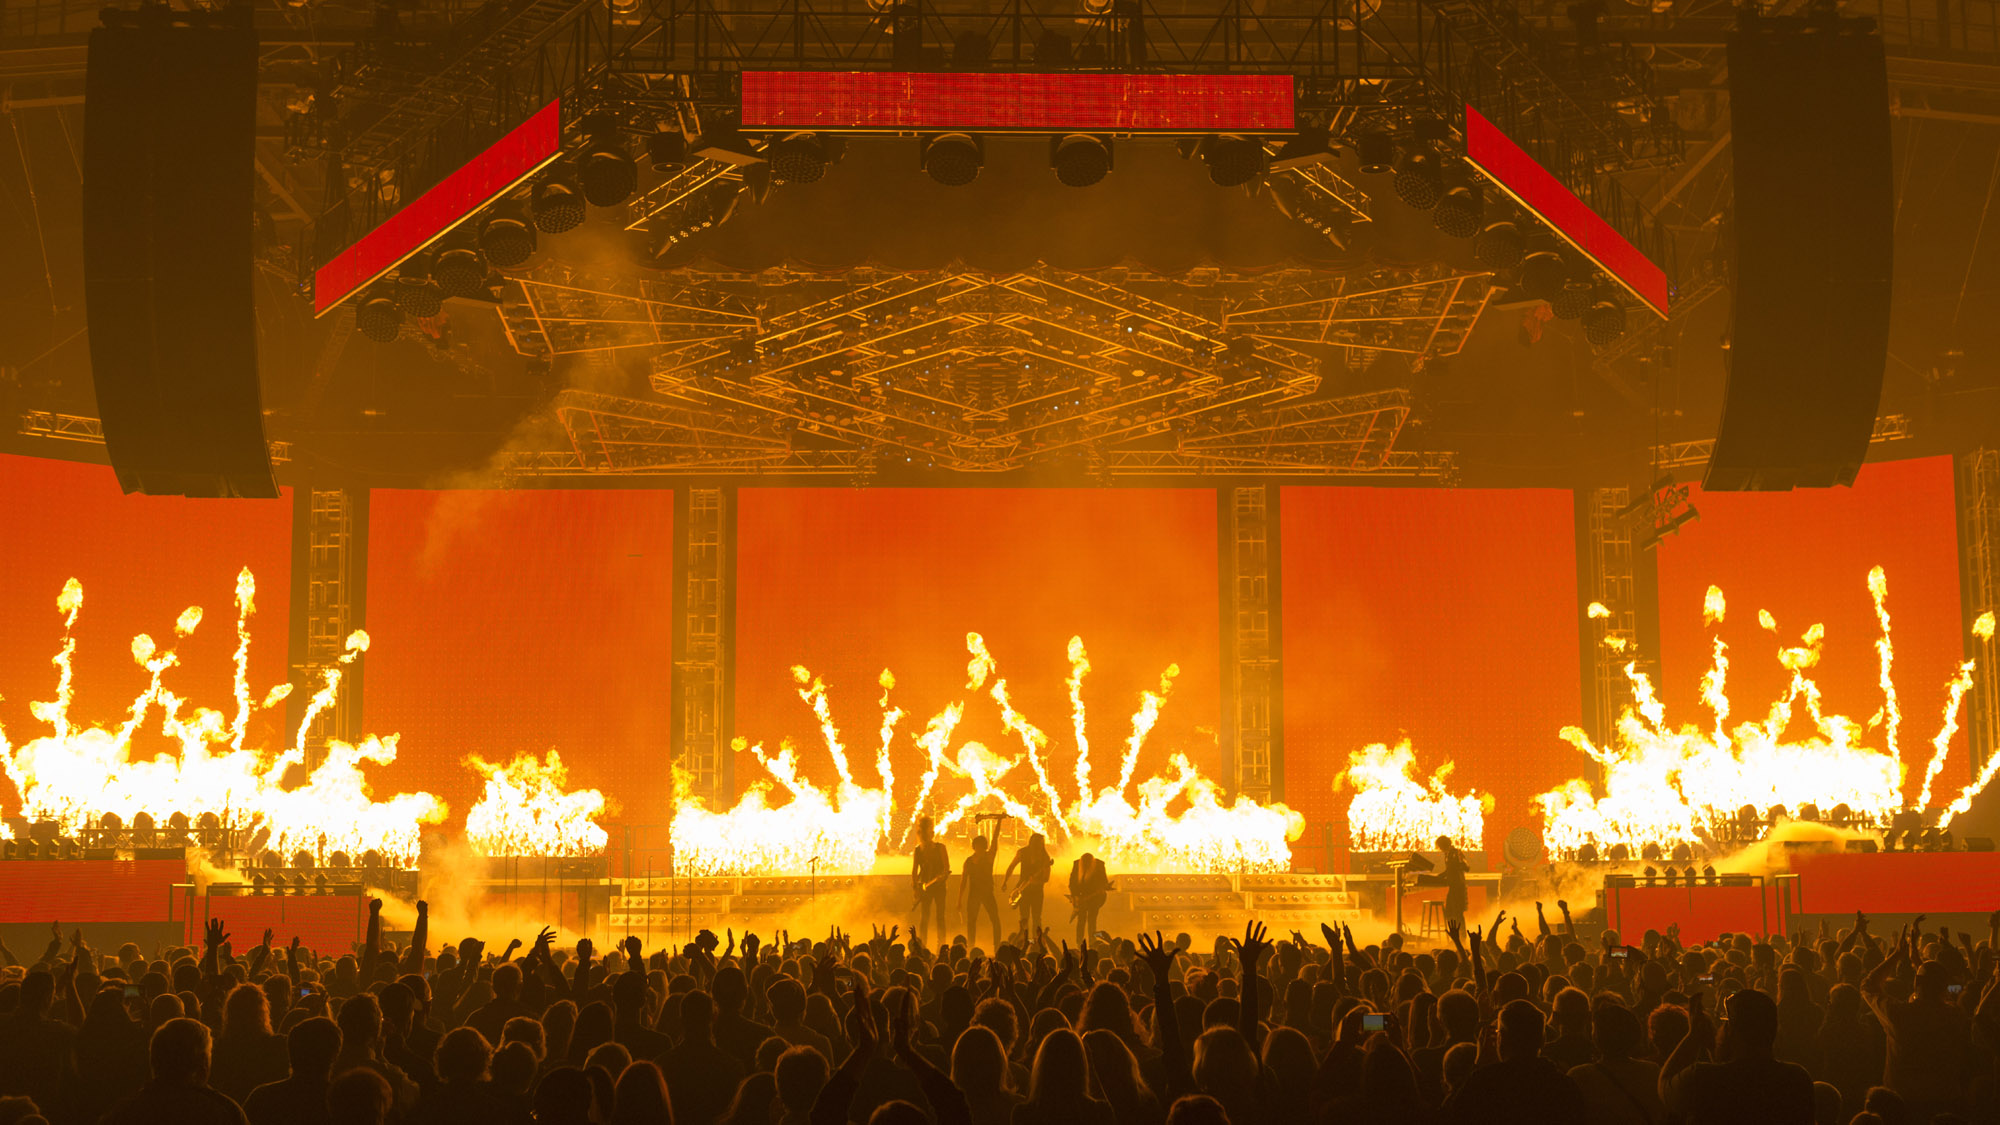 trans siberian orchestra returns to mohegan sun arena in wilkes barre with 2 shows on nov 19 nepa scene - Trans Siberian Orchestra Christmas Canon Rock